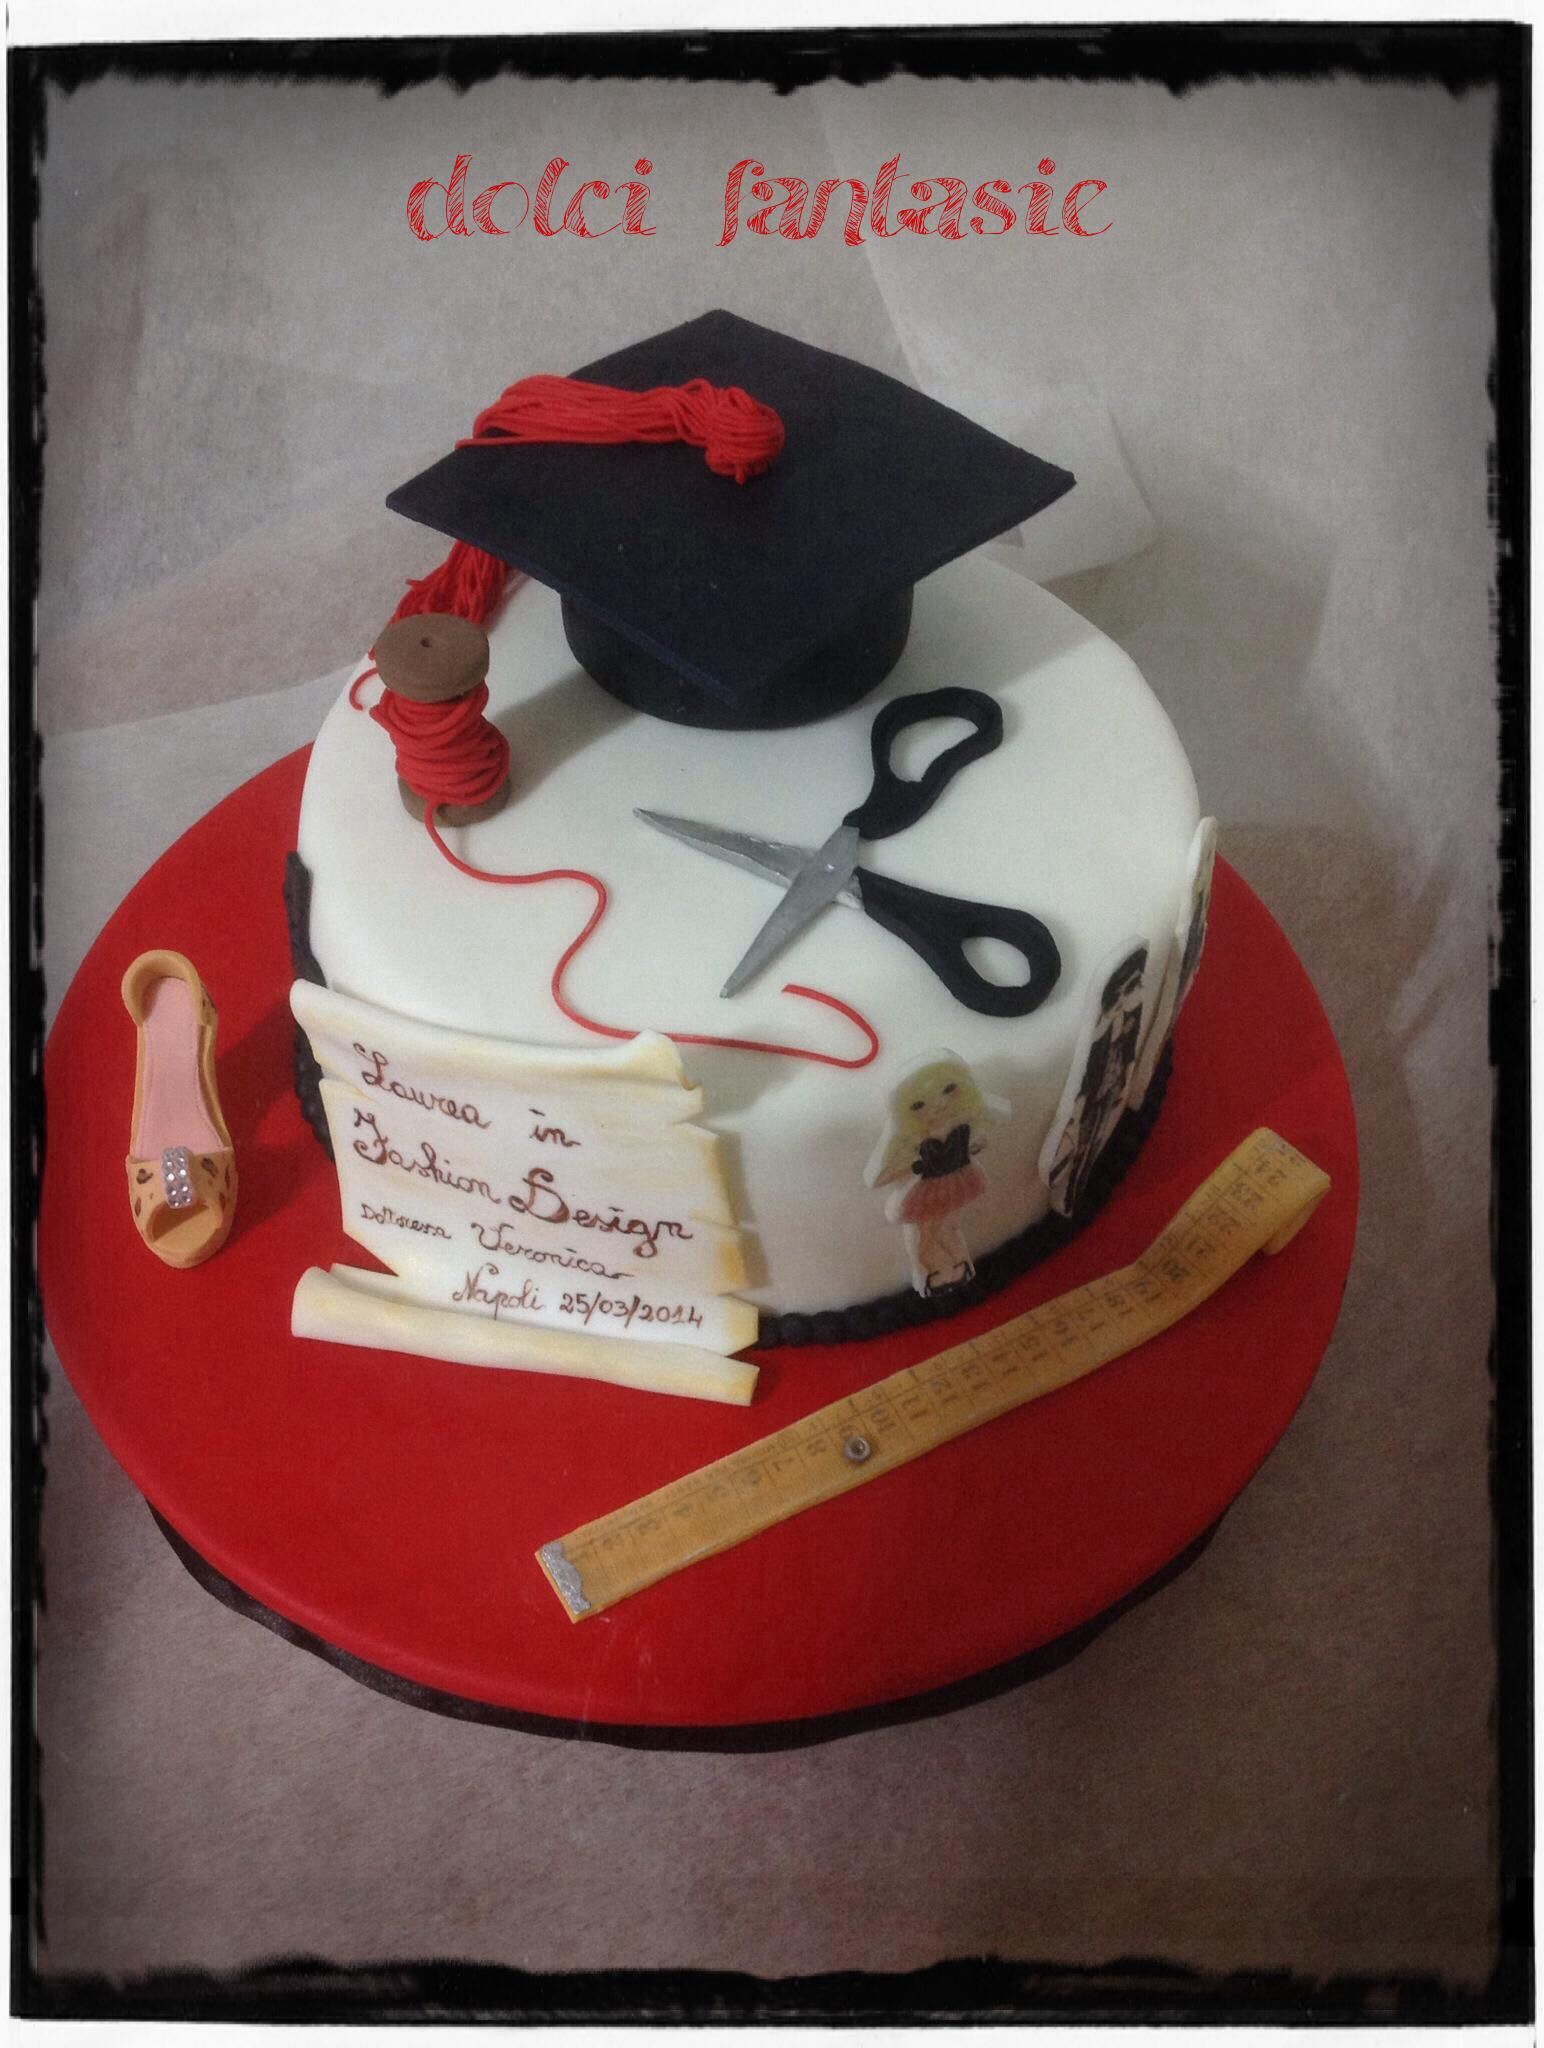 Torta di laurea fashion design torte lauree pinterest for Decorazioni di torte per laurea